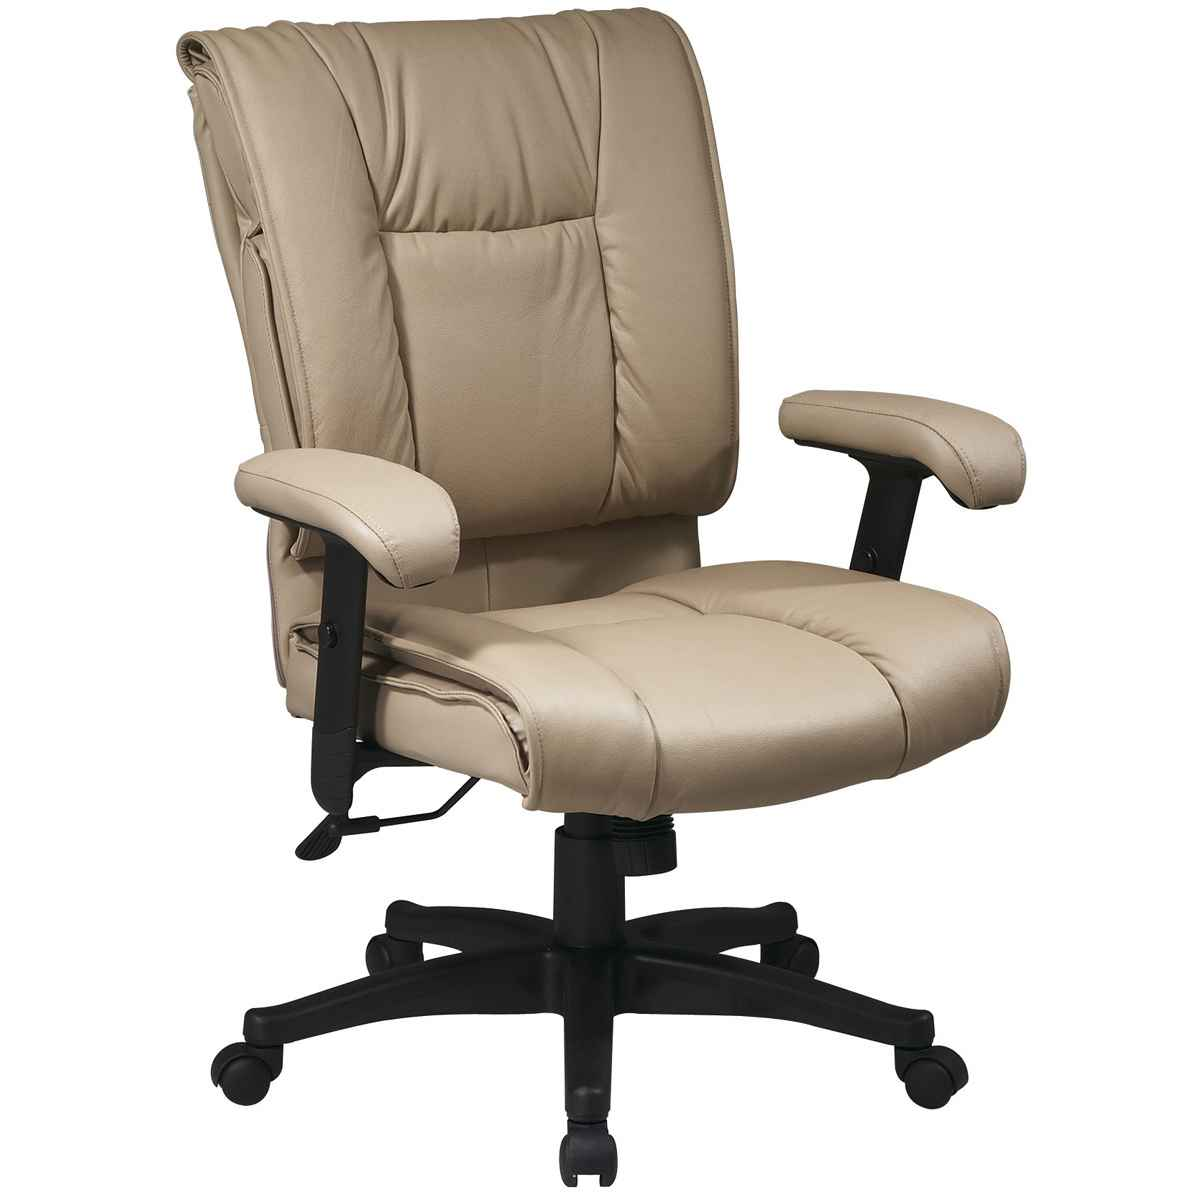 Computer Chairs Recaro Computer Chair Office Furniture